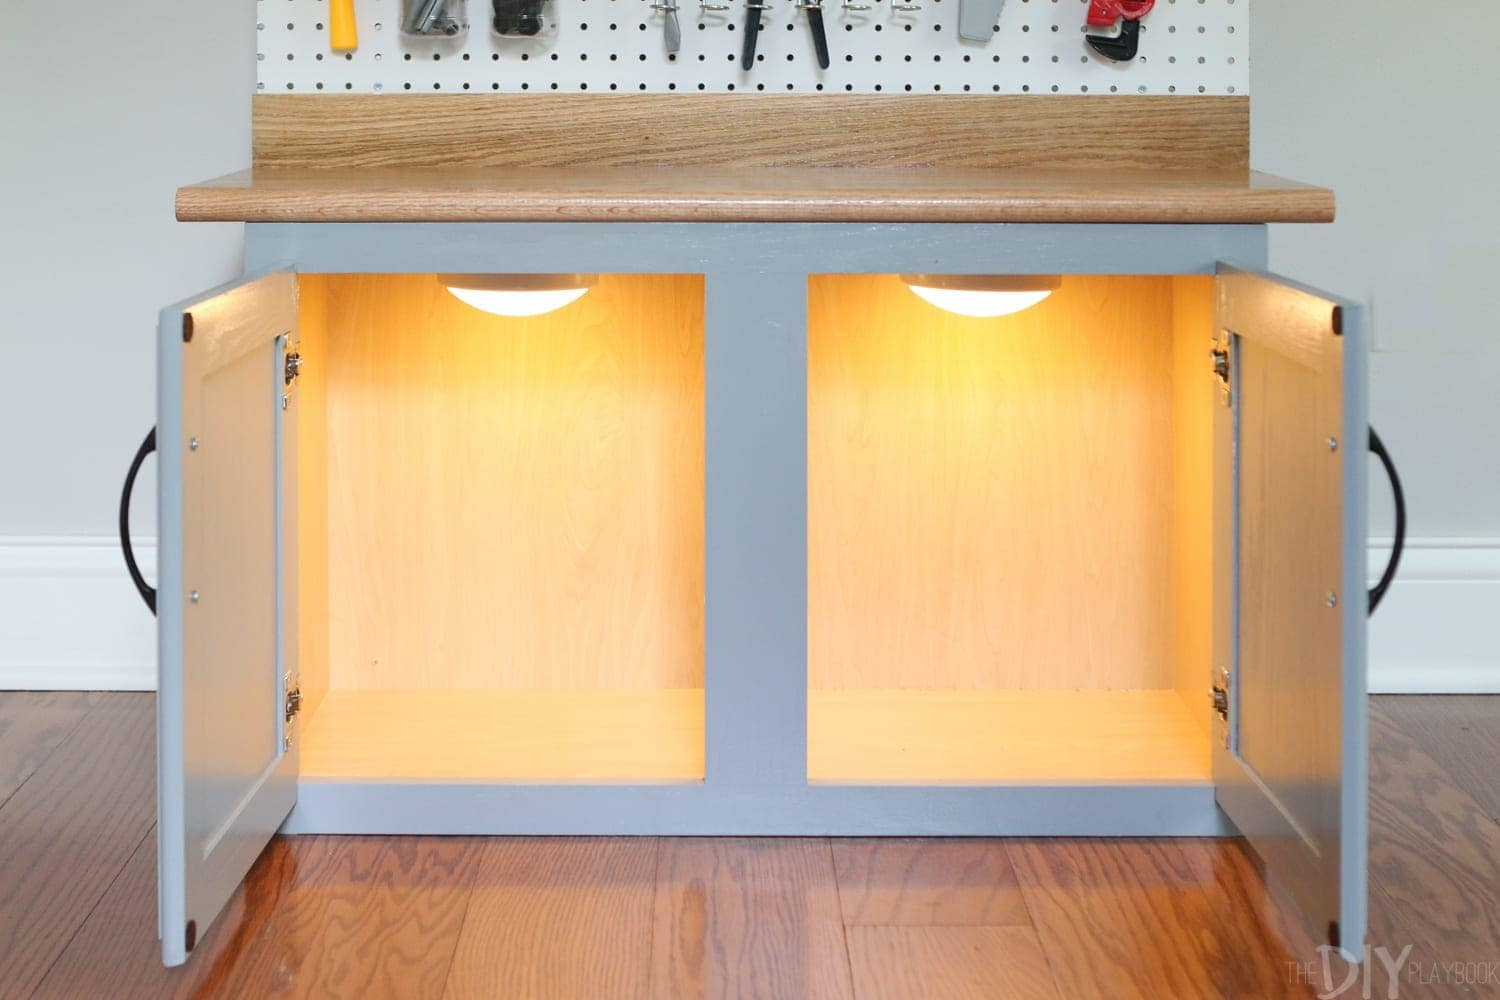 Add the lights: DIY Kid's Tool Bench: Step by Step Tutorial | DIY Playbook